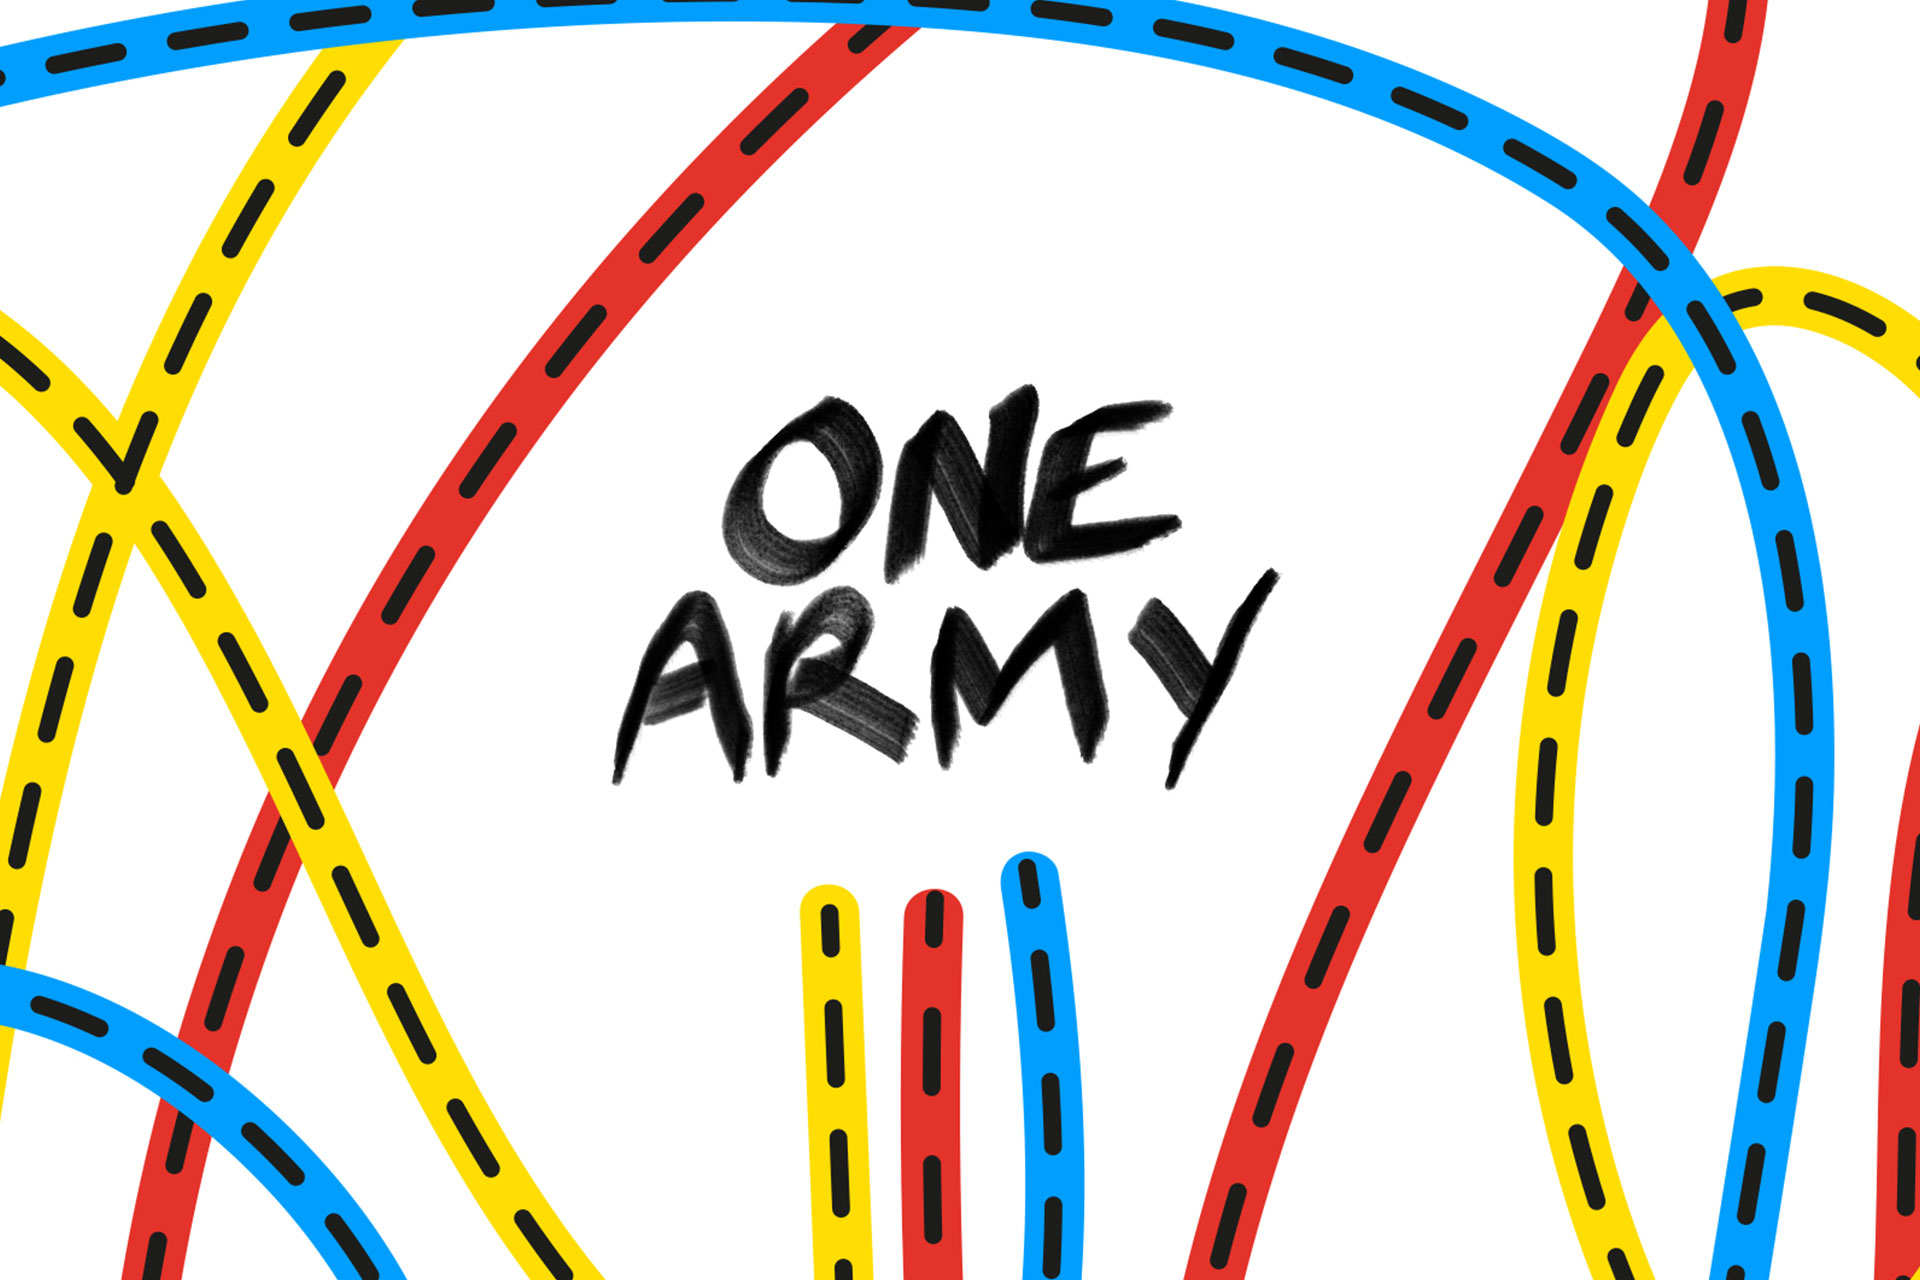 One Army colourful illustration